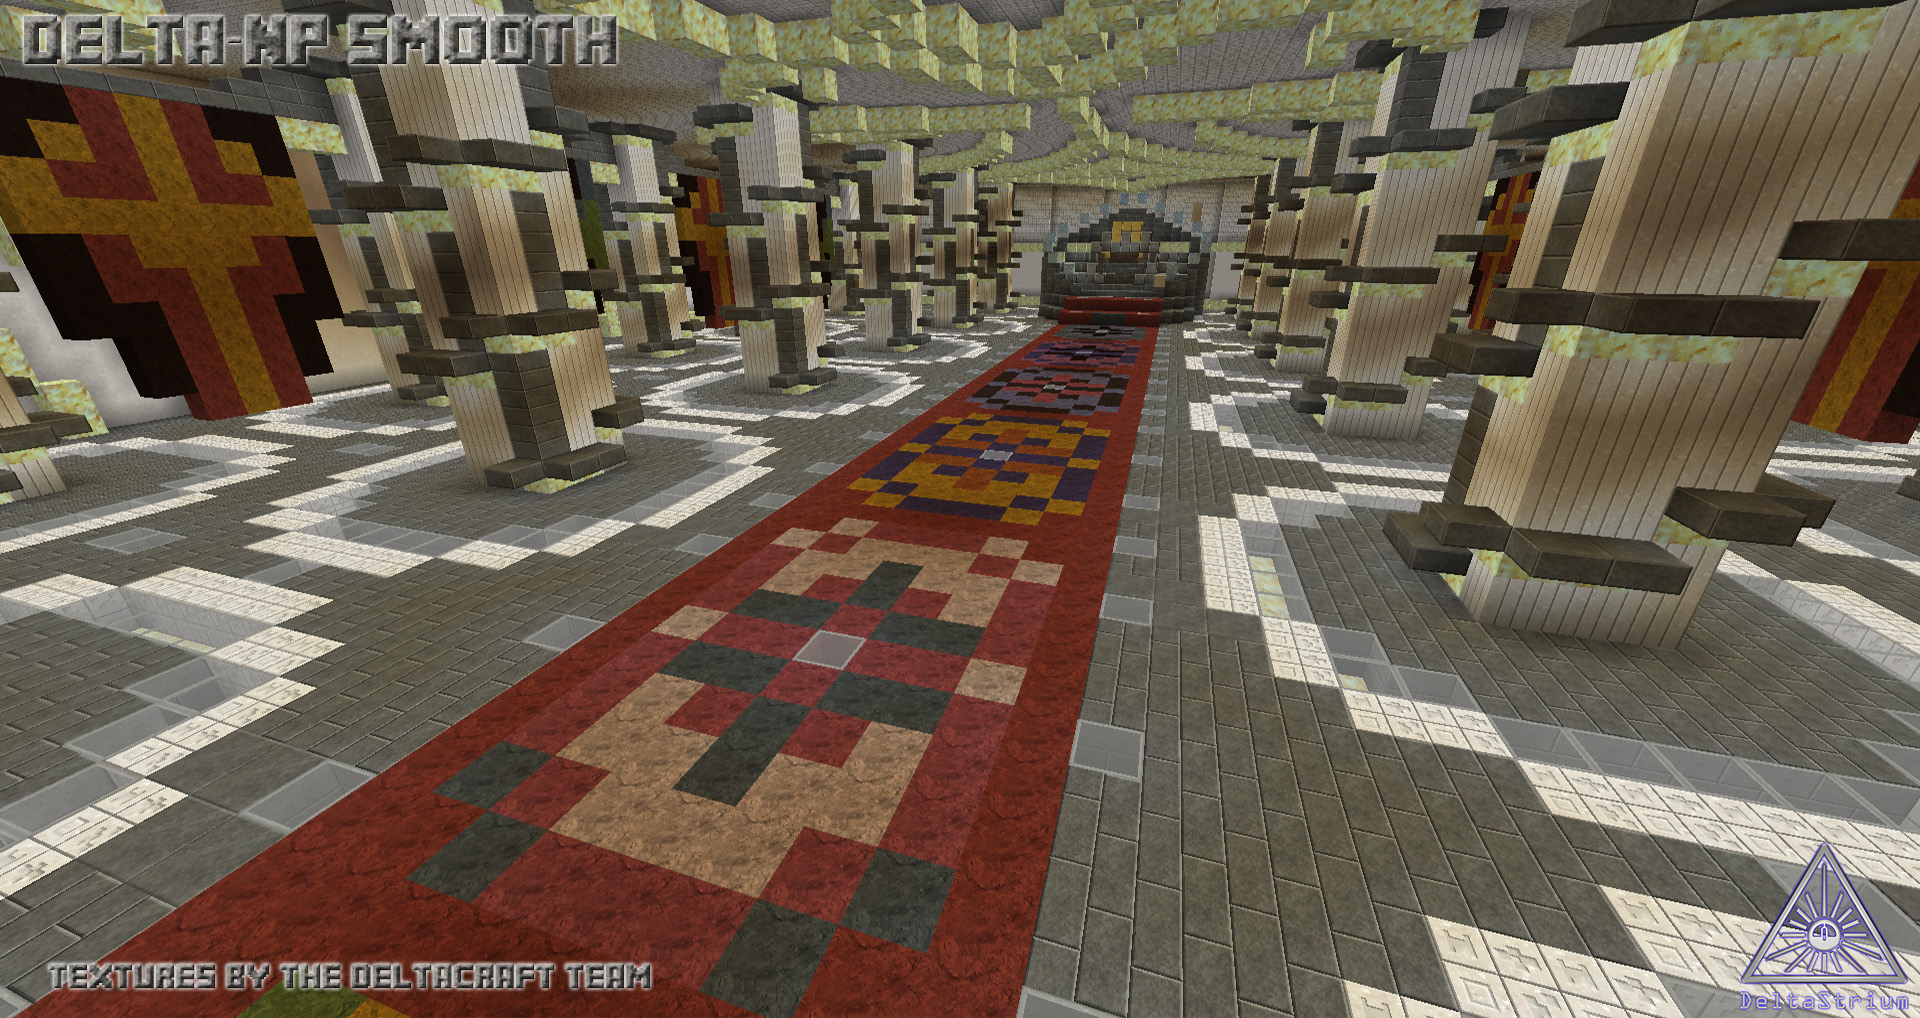 18f9c  Deltacraft resource pack 1 [1.9.4/1.8.9] [64x] Delta NP Smooth Texture Pack Download